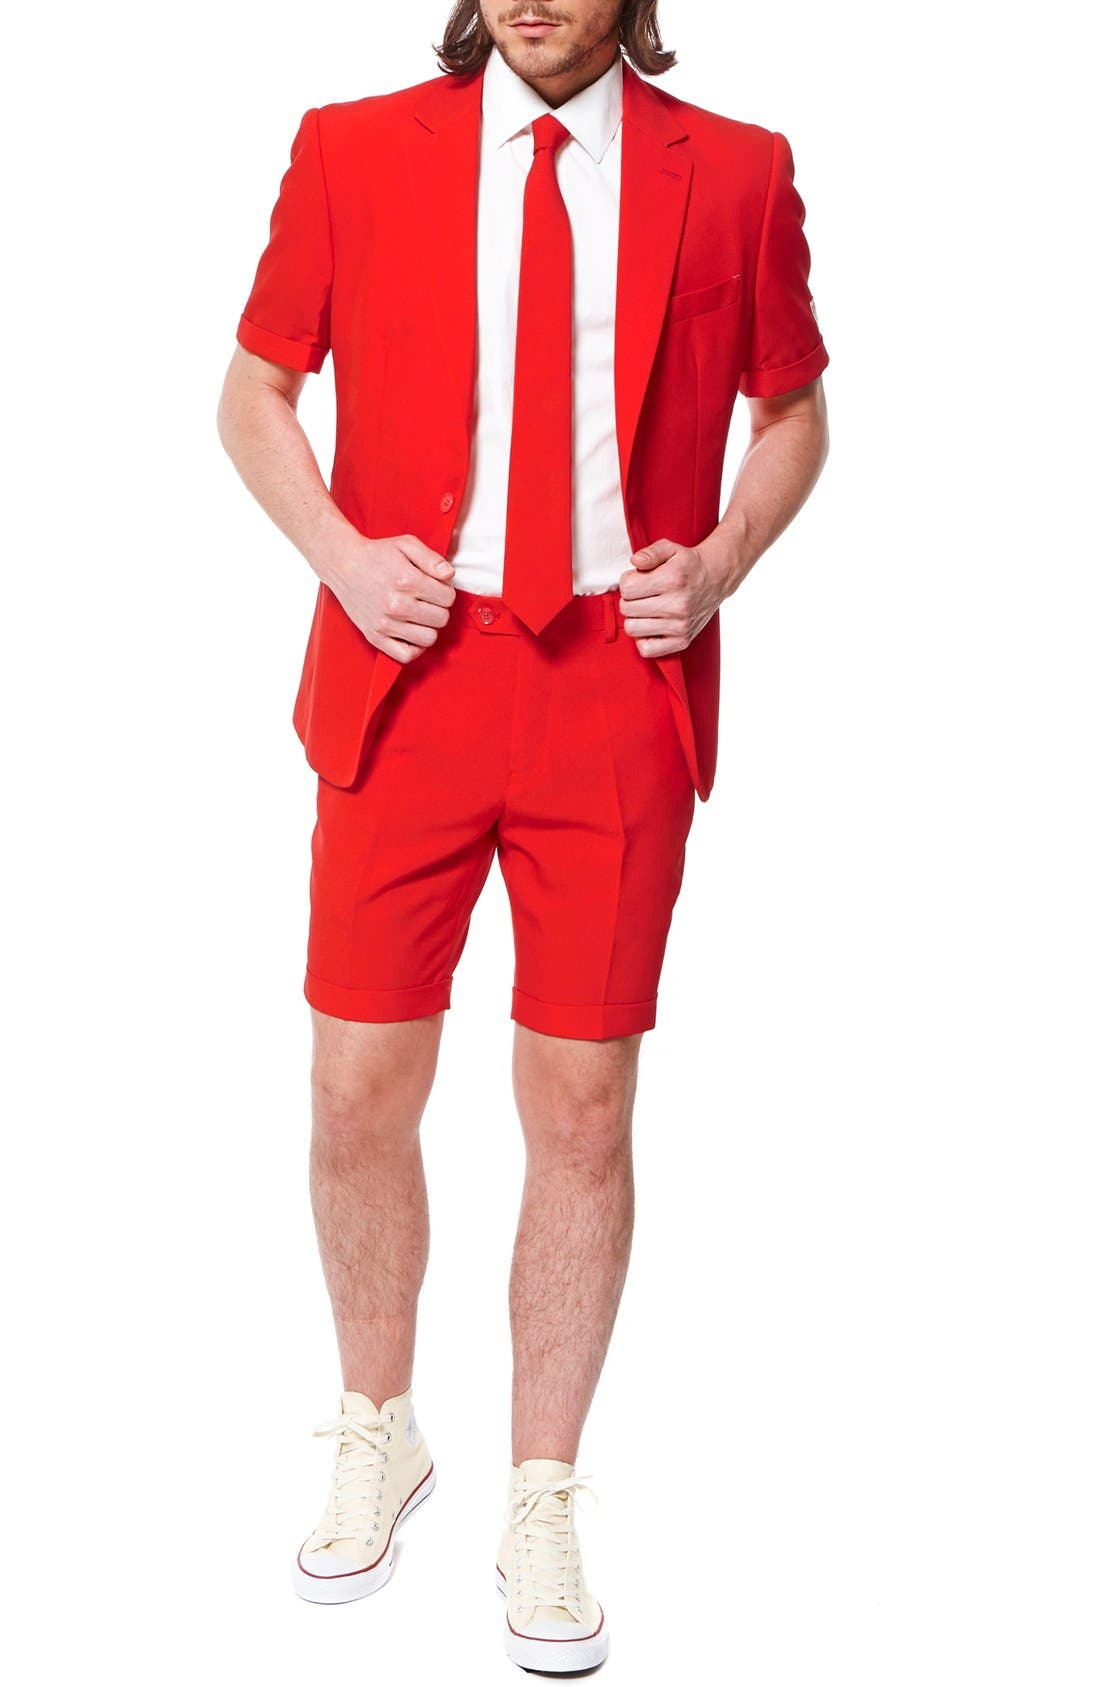 OppoSuits 'Summer Red Devil' Trim Fit Short Suit with Tie